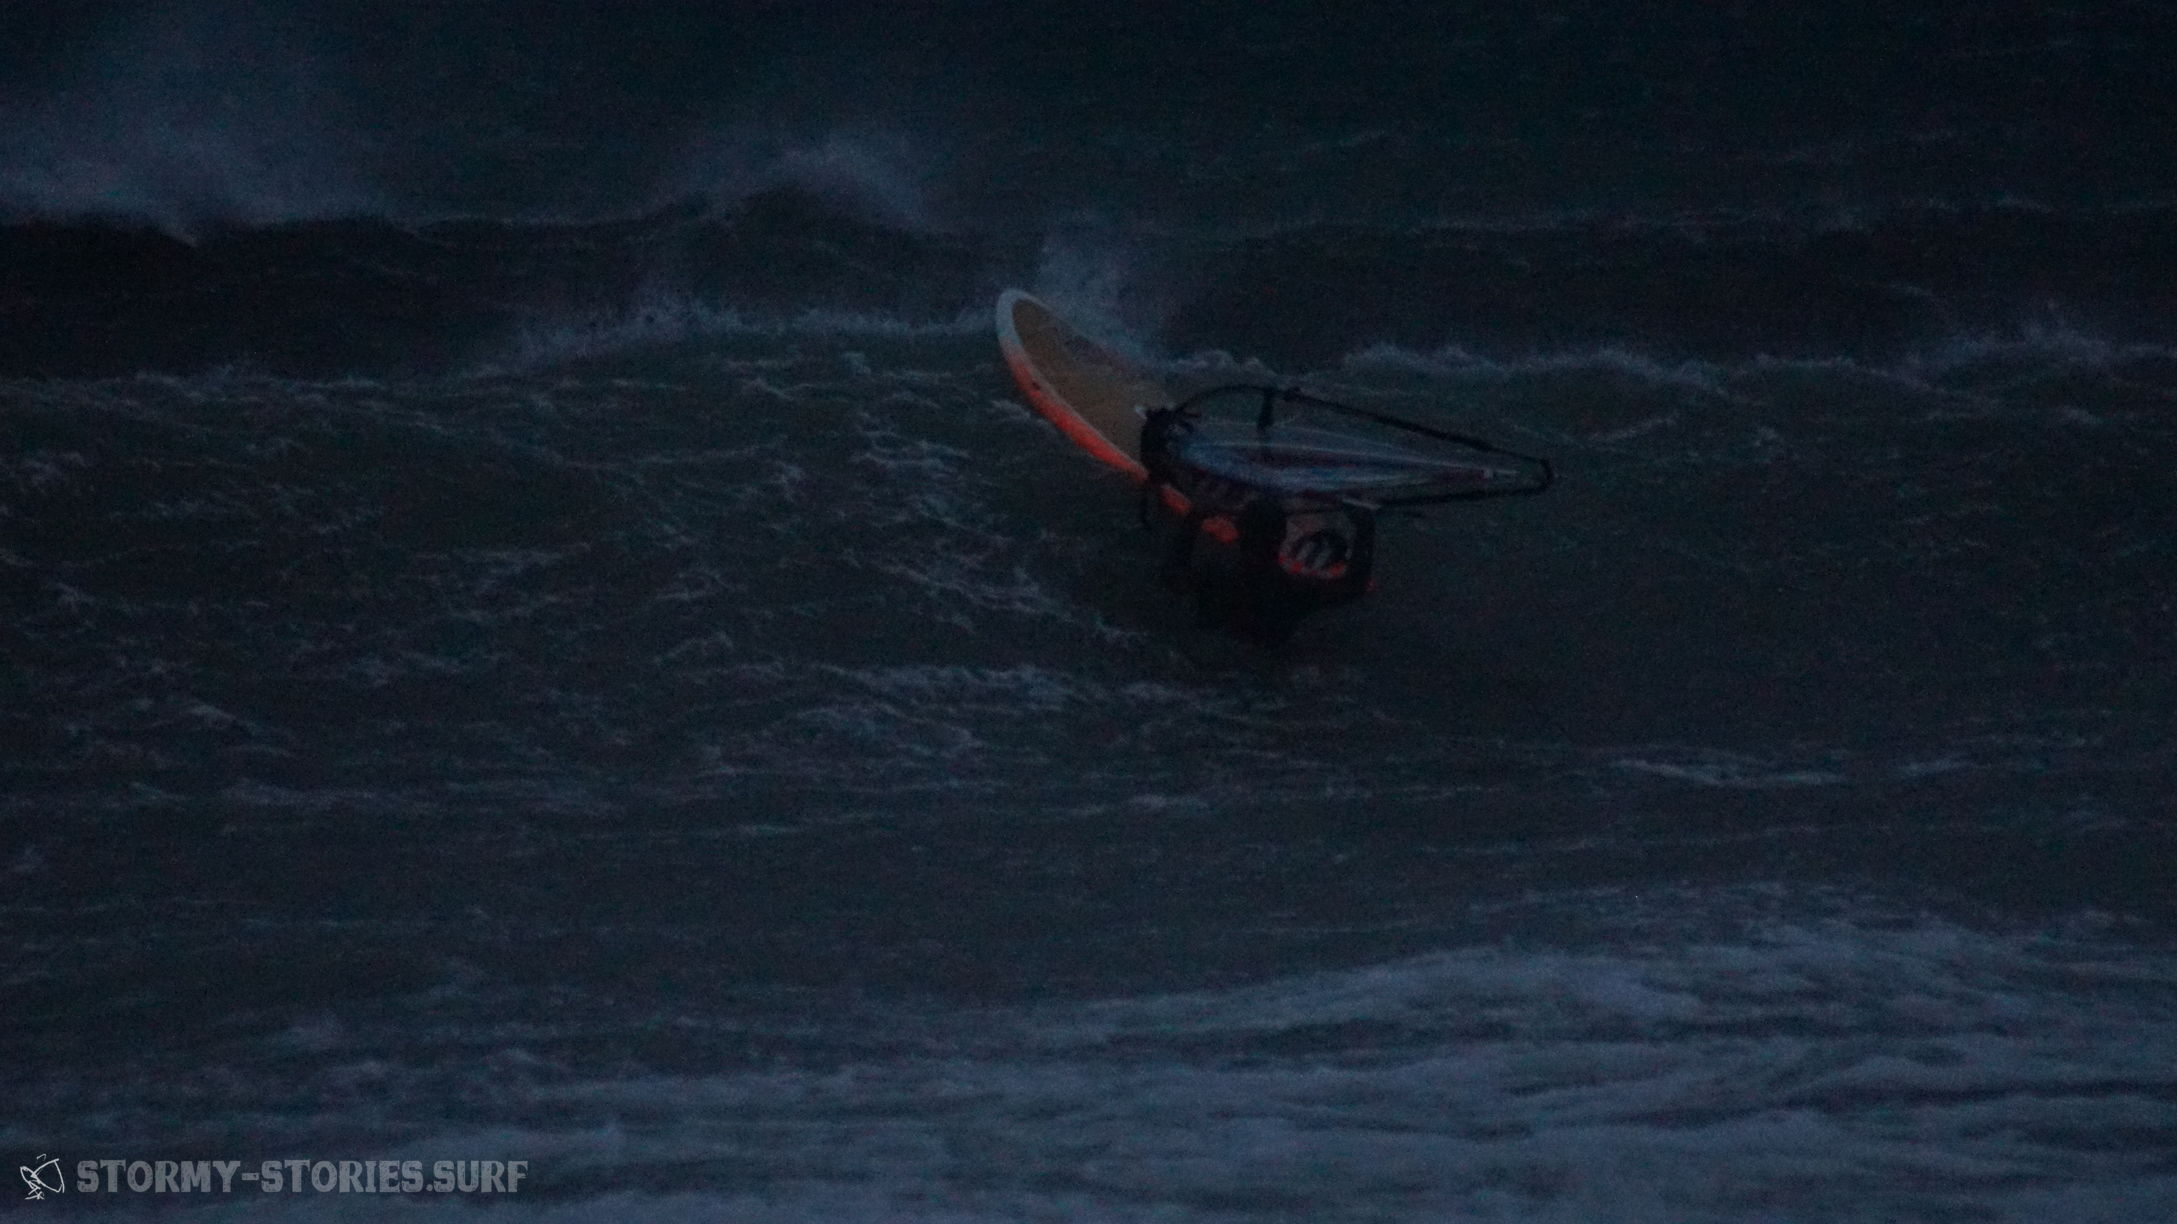 windsurf-stormy-stories-surf-travel-blog-ireland-irland-11-06-brandon-bay-stradbally-WM-35p-DSC09393